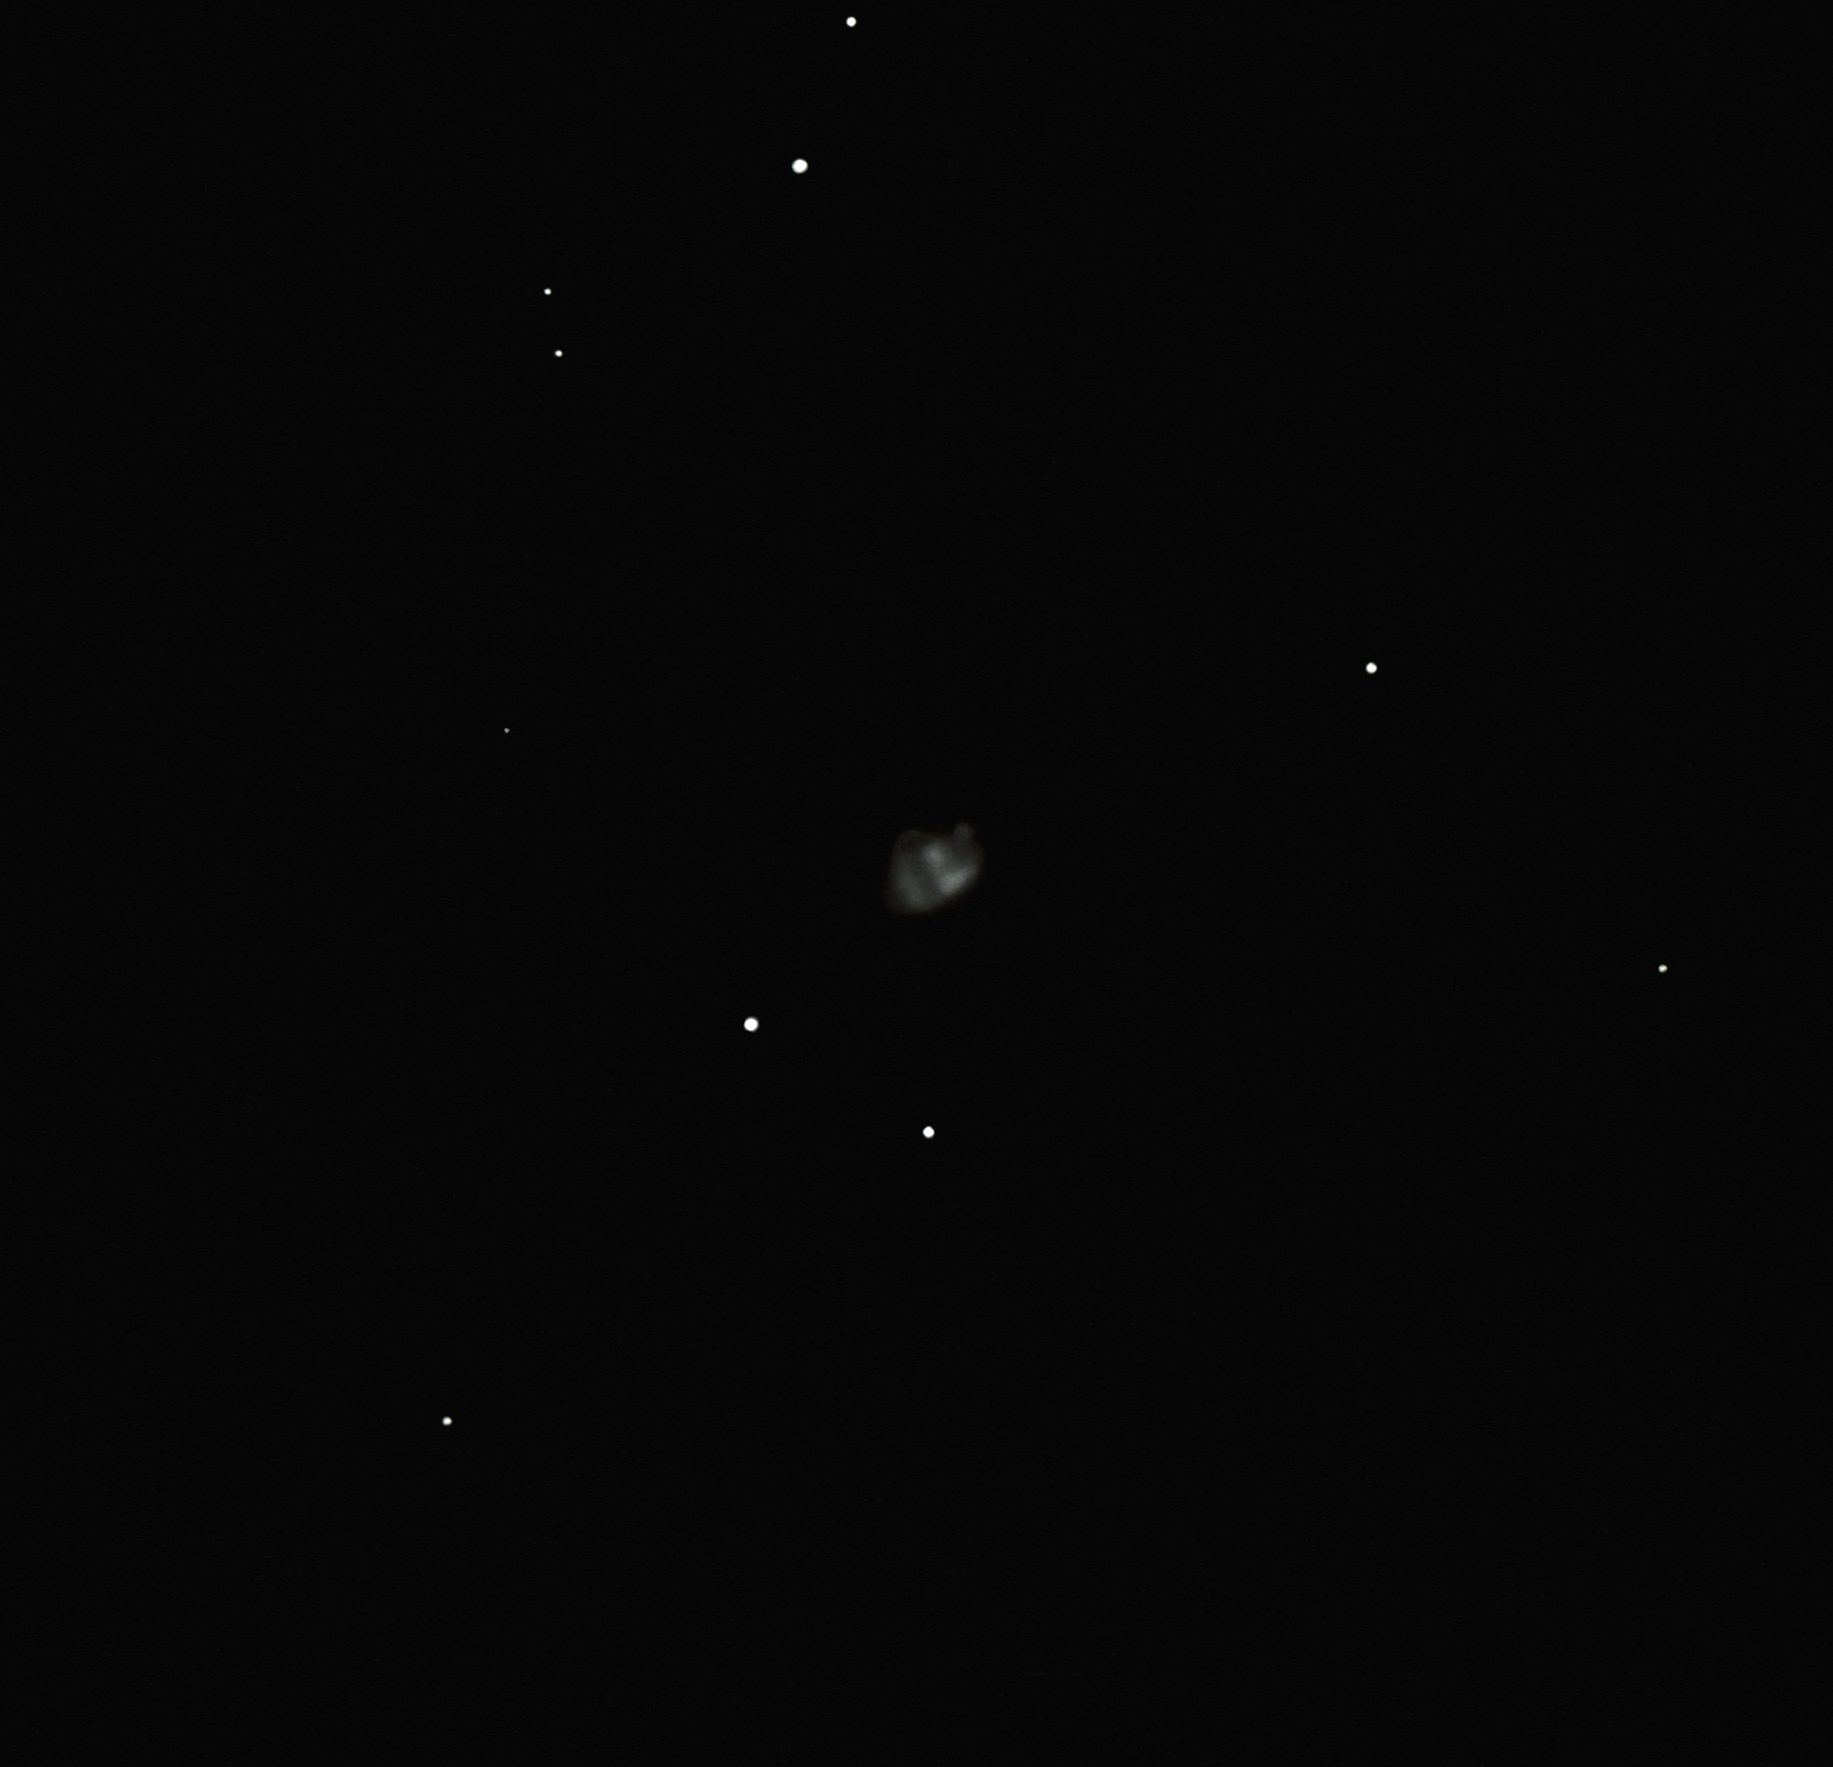 ngc0604-T381-md3.png